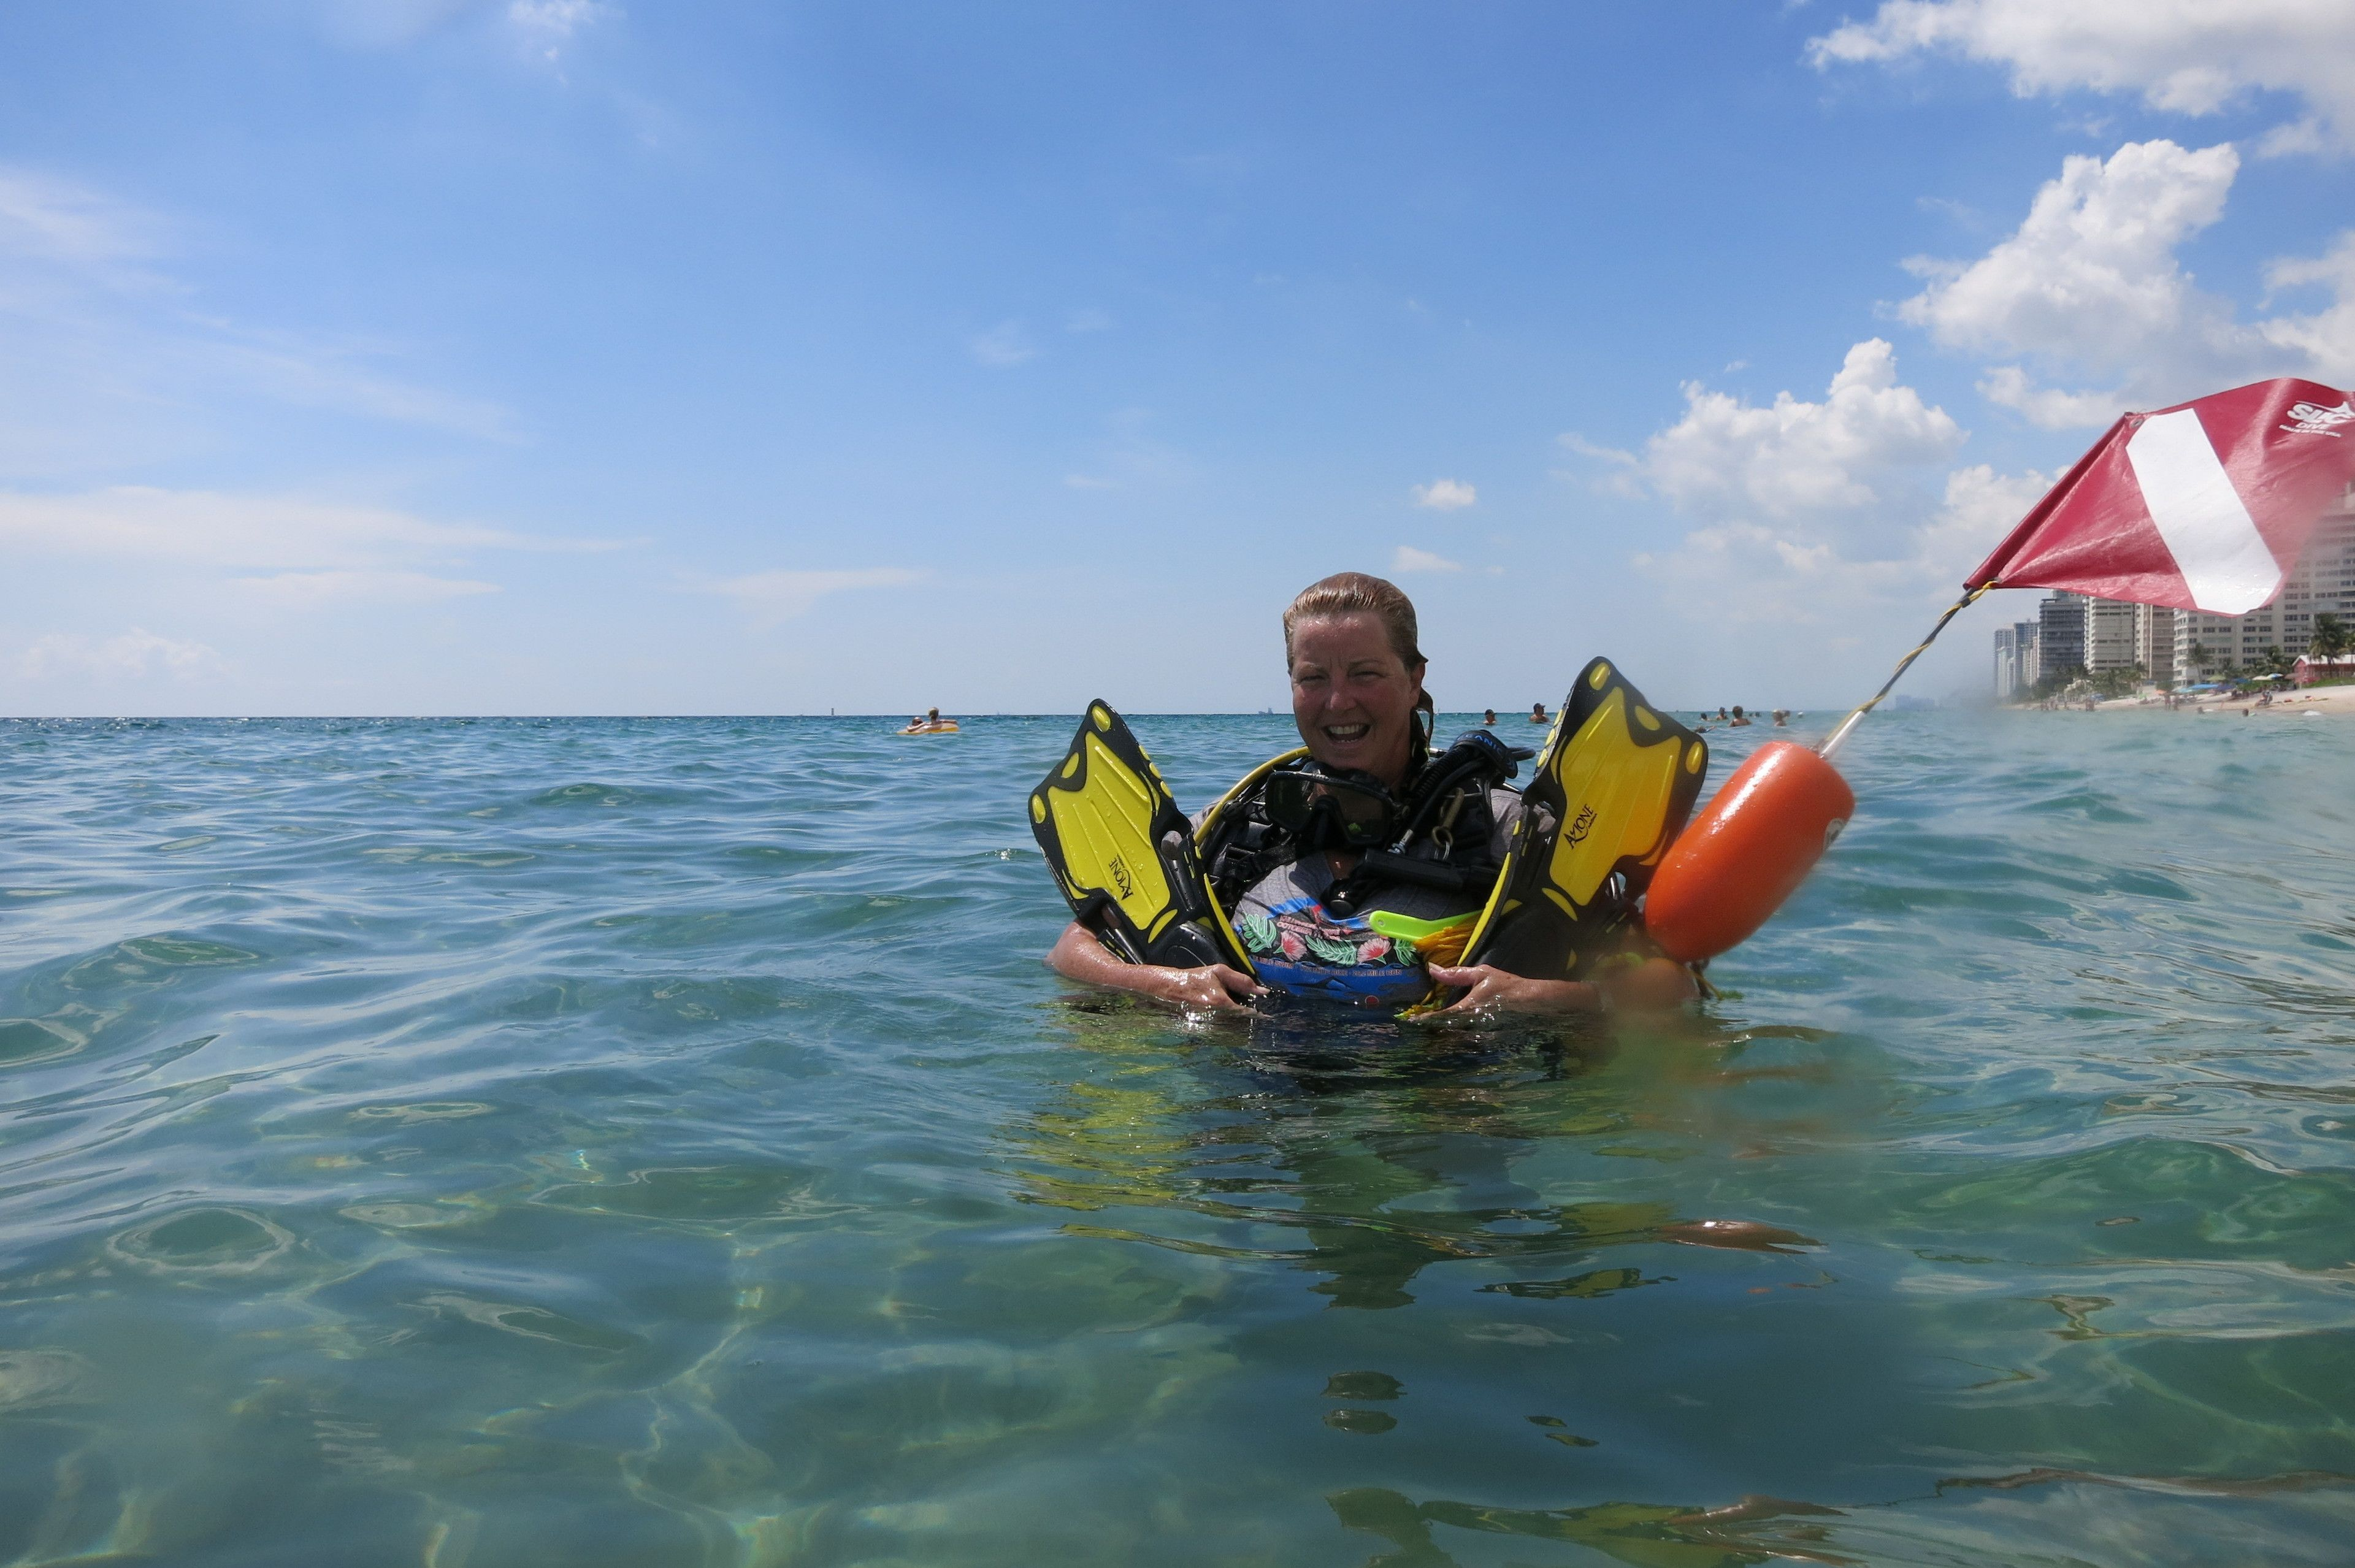 3 Day Scuba Certification - Safe, Private and Exclusive